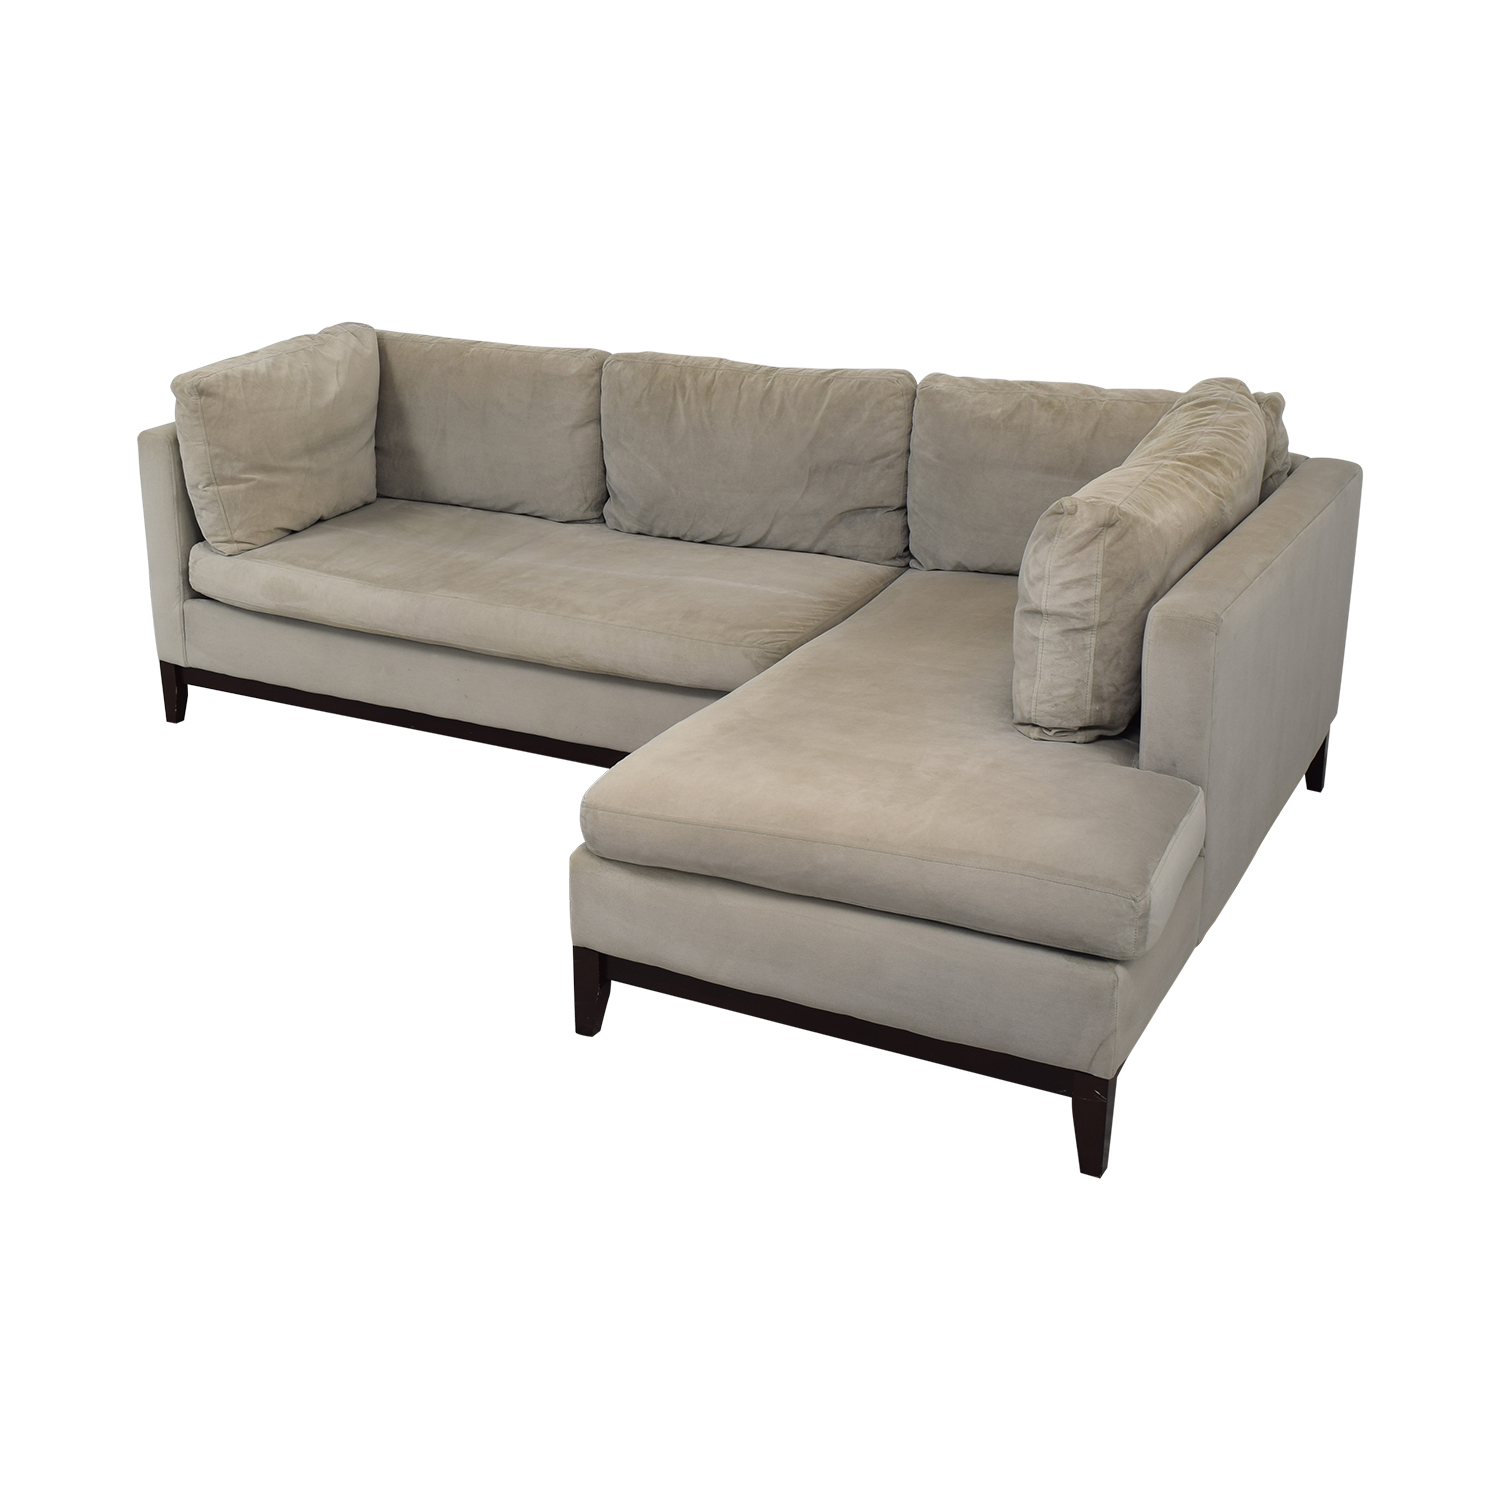 West Elm West Elm Blake Chaise Sectional Sofa discount